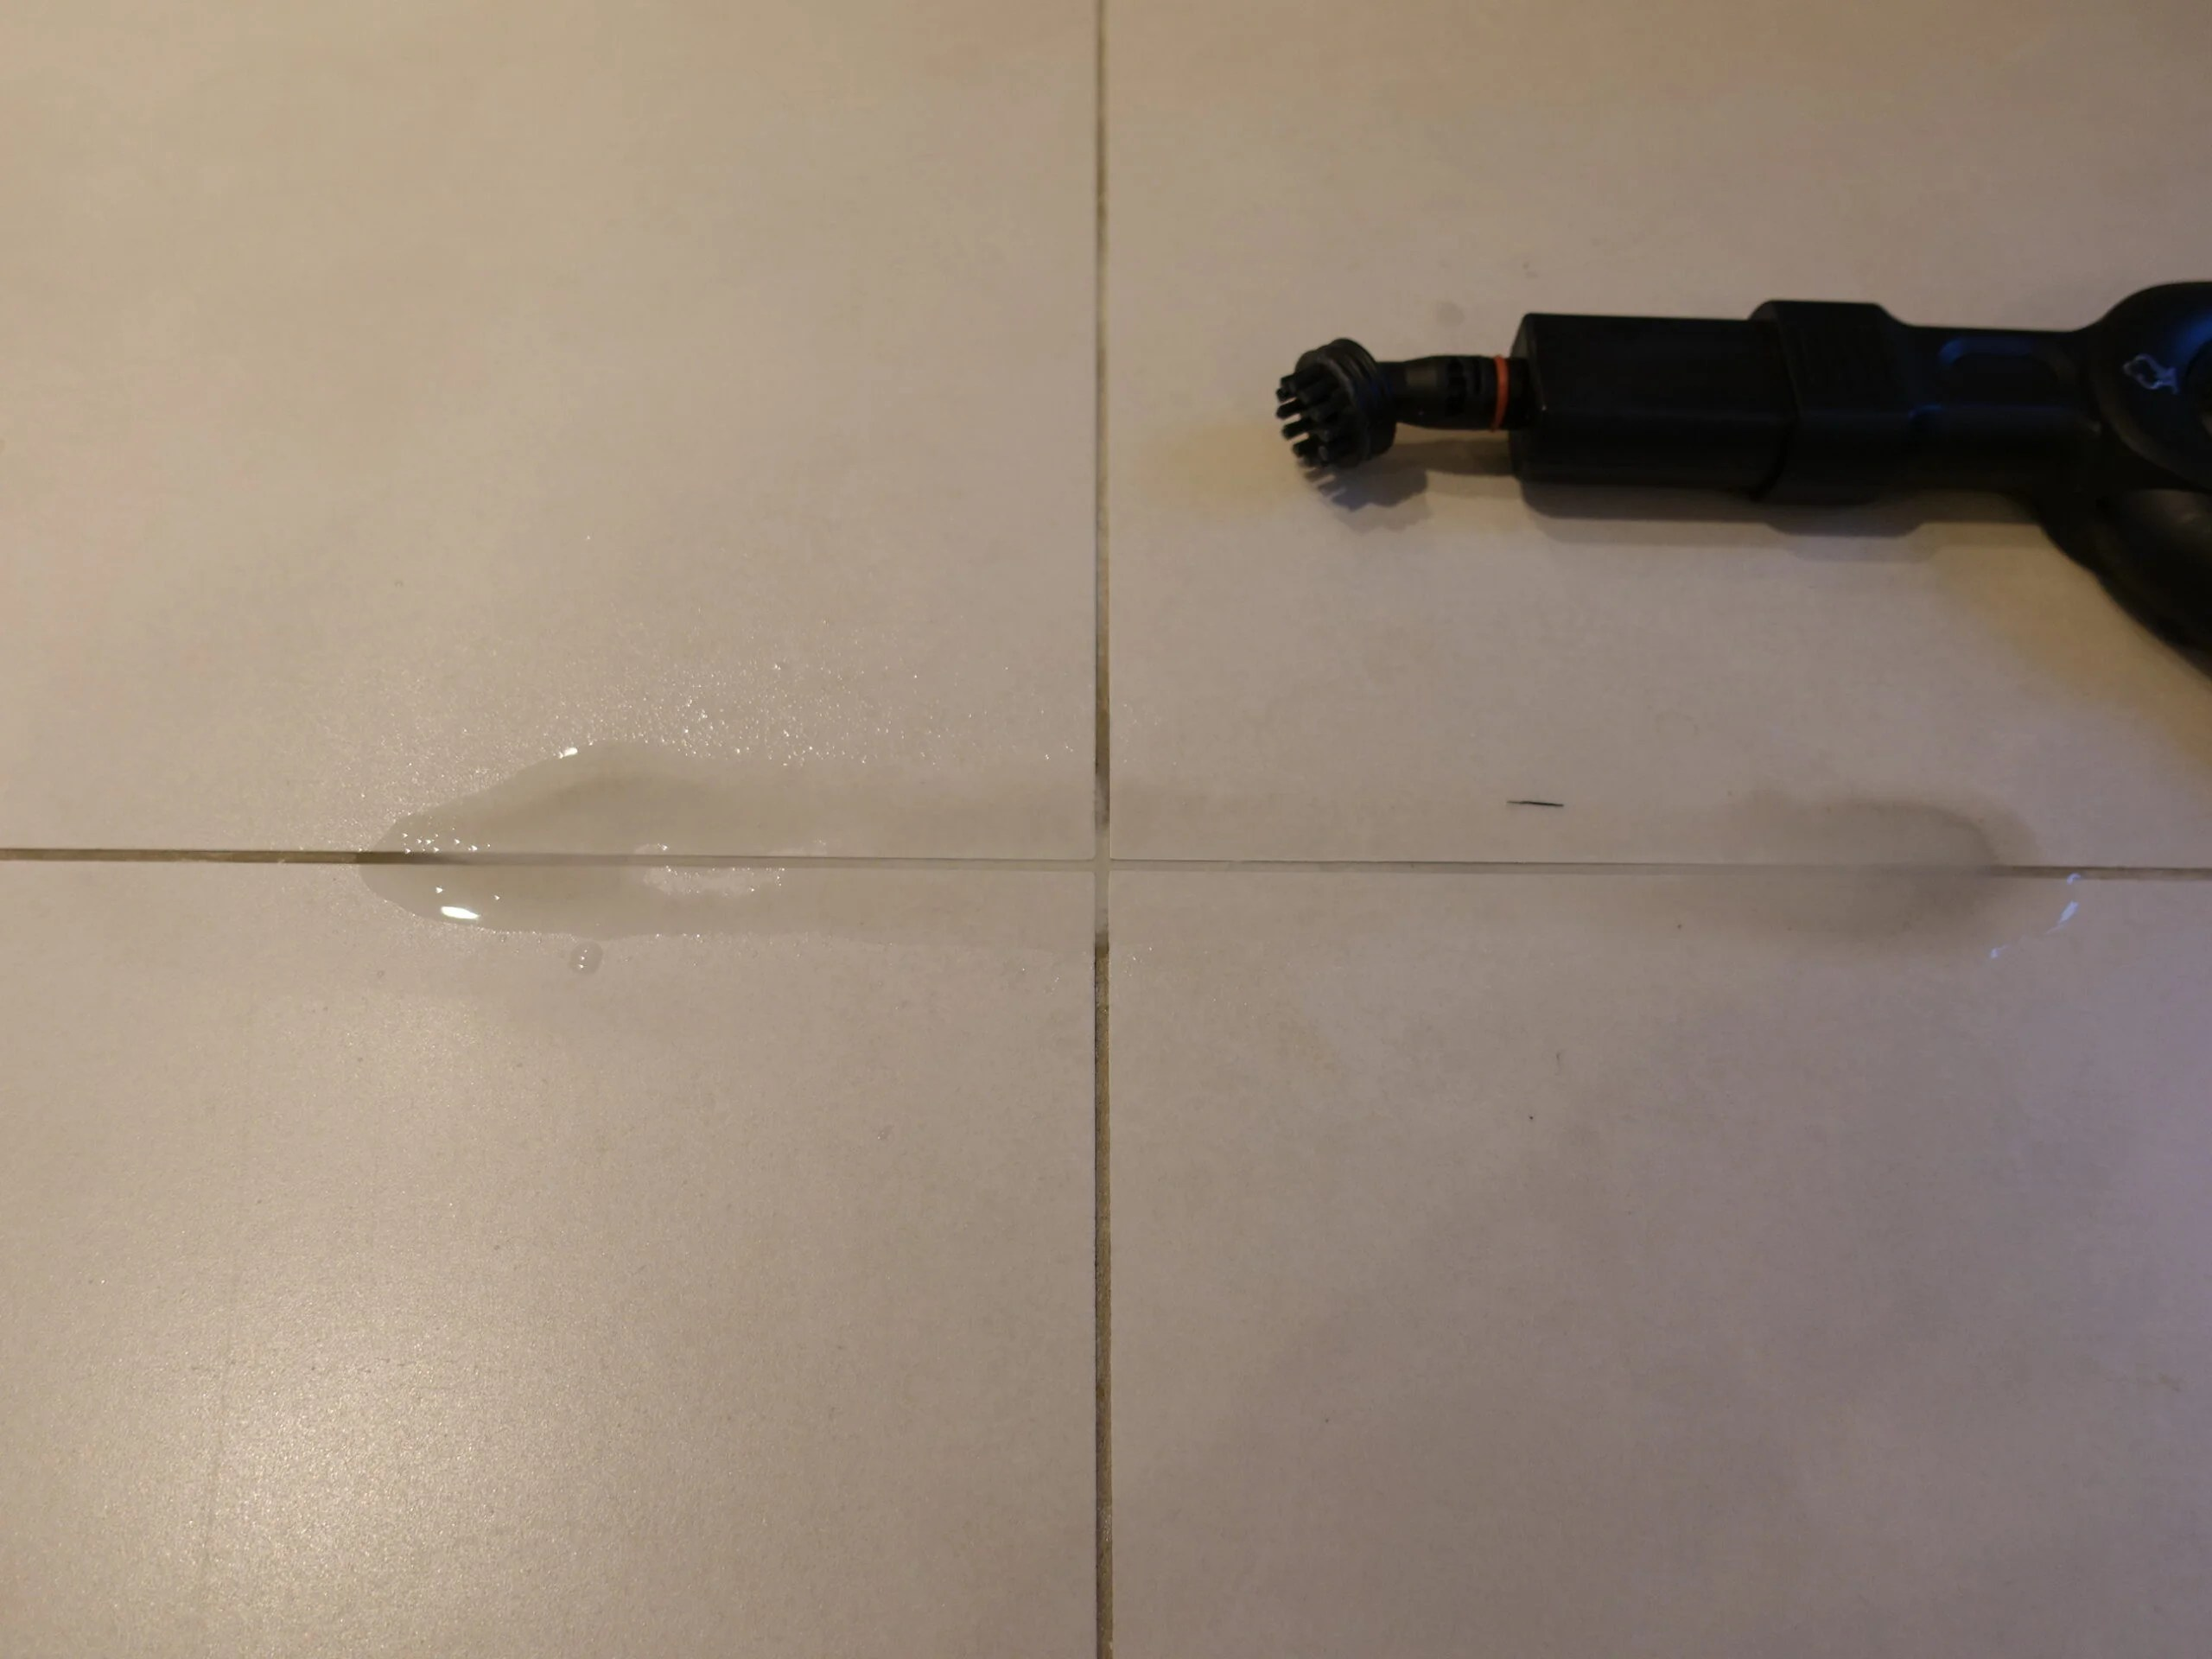 Polti Vaporetto Smart 100_B cleaning grout